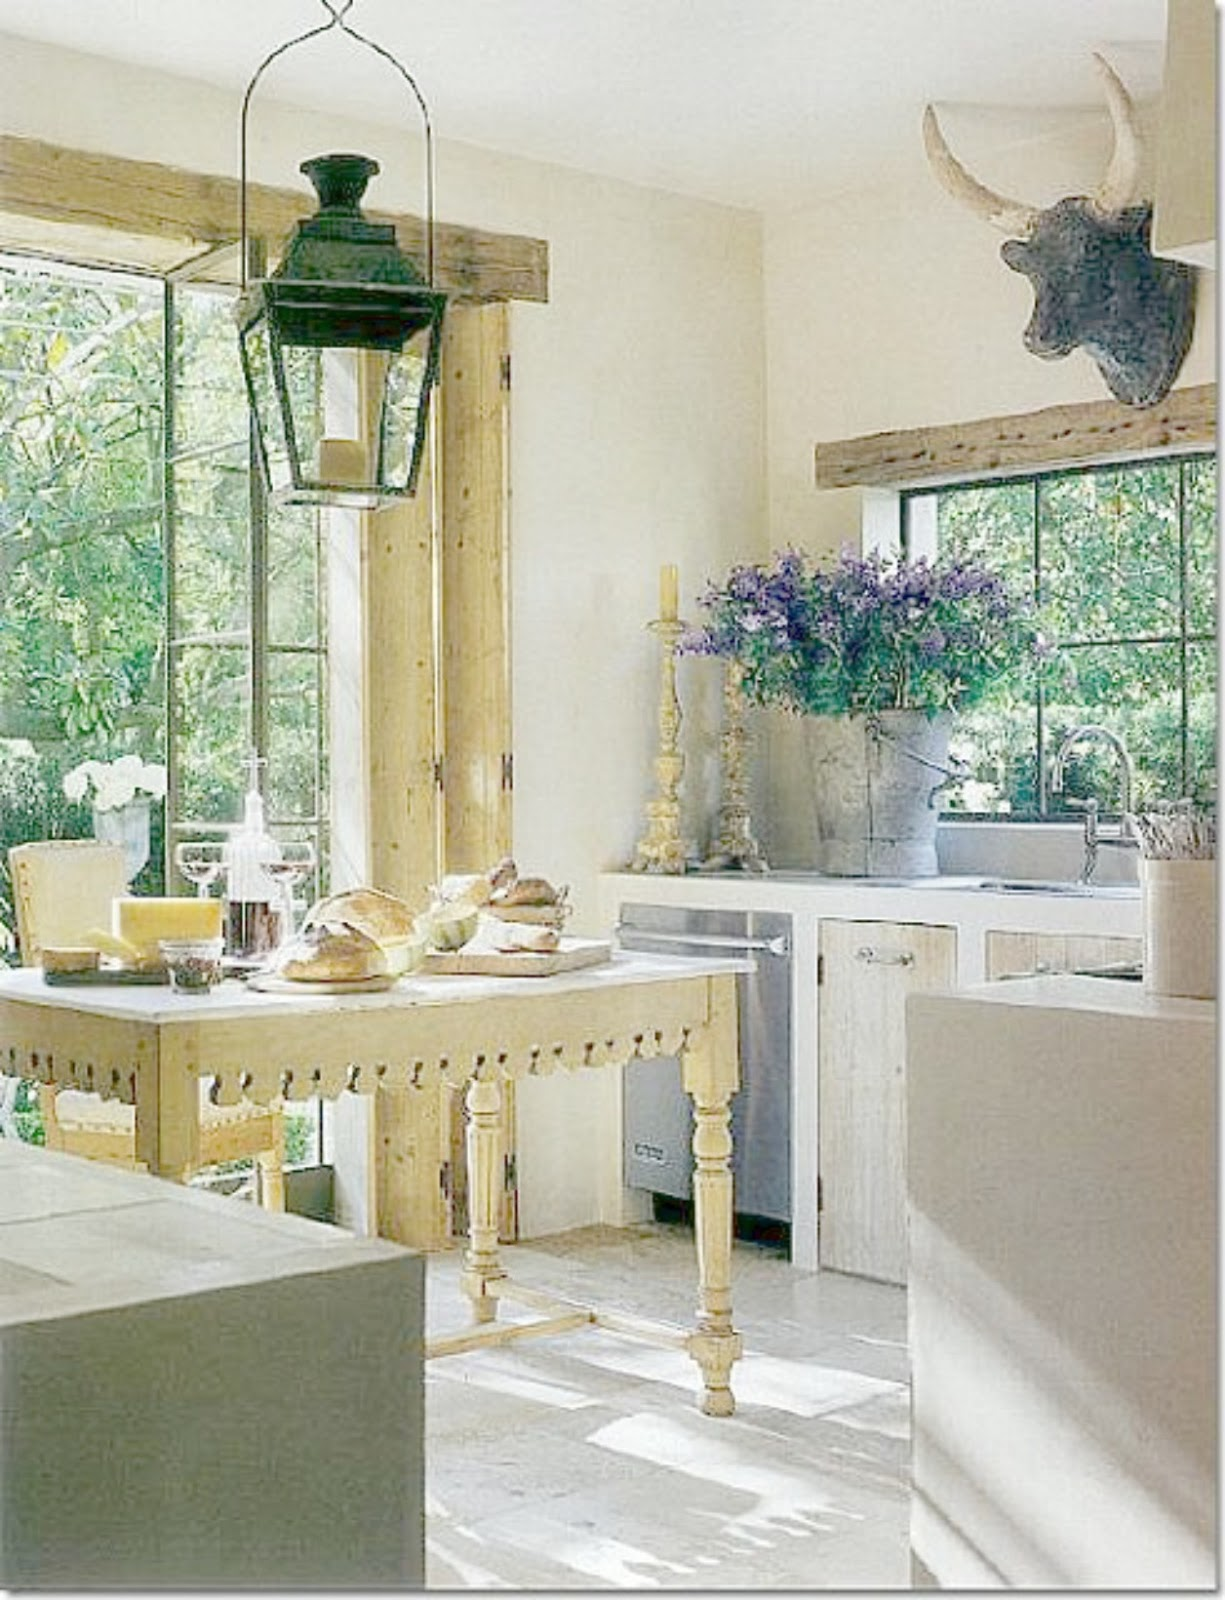 French Country kitchen decor with antiques and reclaimed materials from Europe! Pamela Pierce's gorgeous home with sophisticated French Country decor and European farmhouse charm on Hello Lovely Studio